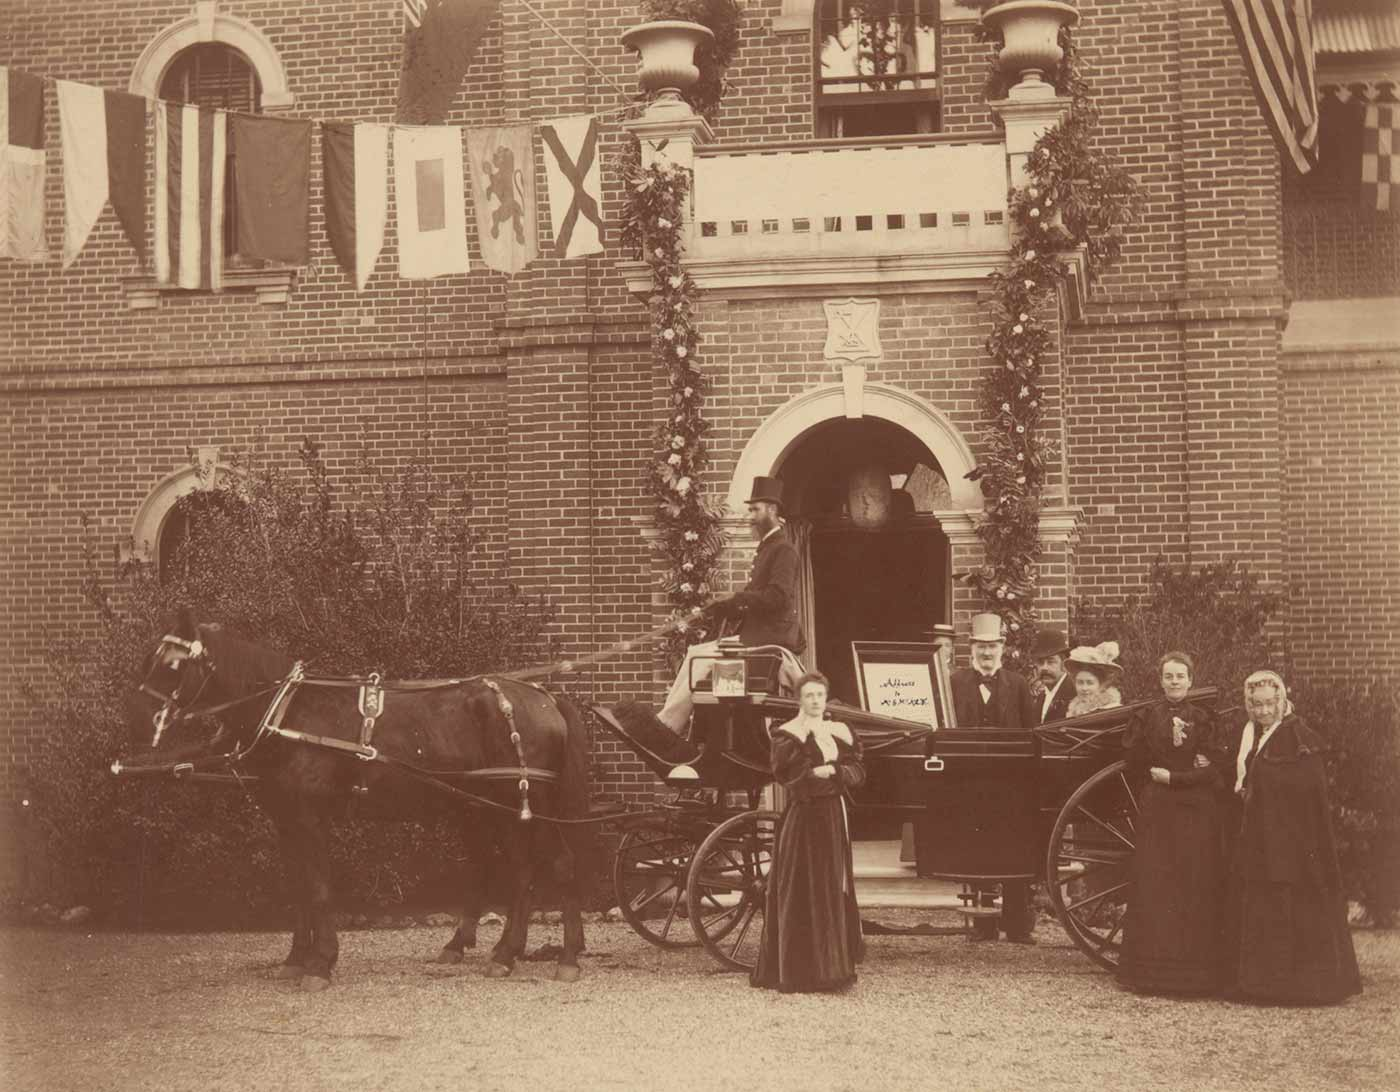 Sepia coloured photograph showing a landau carriage pulled by a horse standing in front of the homestead entrance with the honeymoon couple being greeted by relatives.